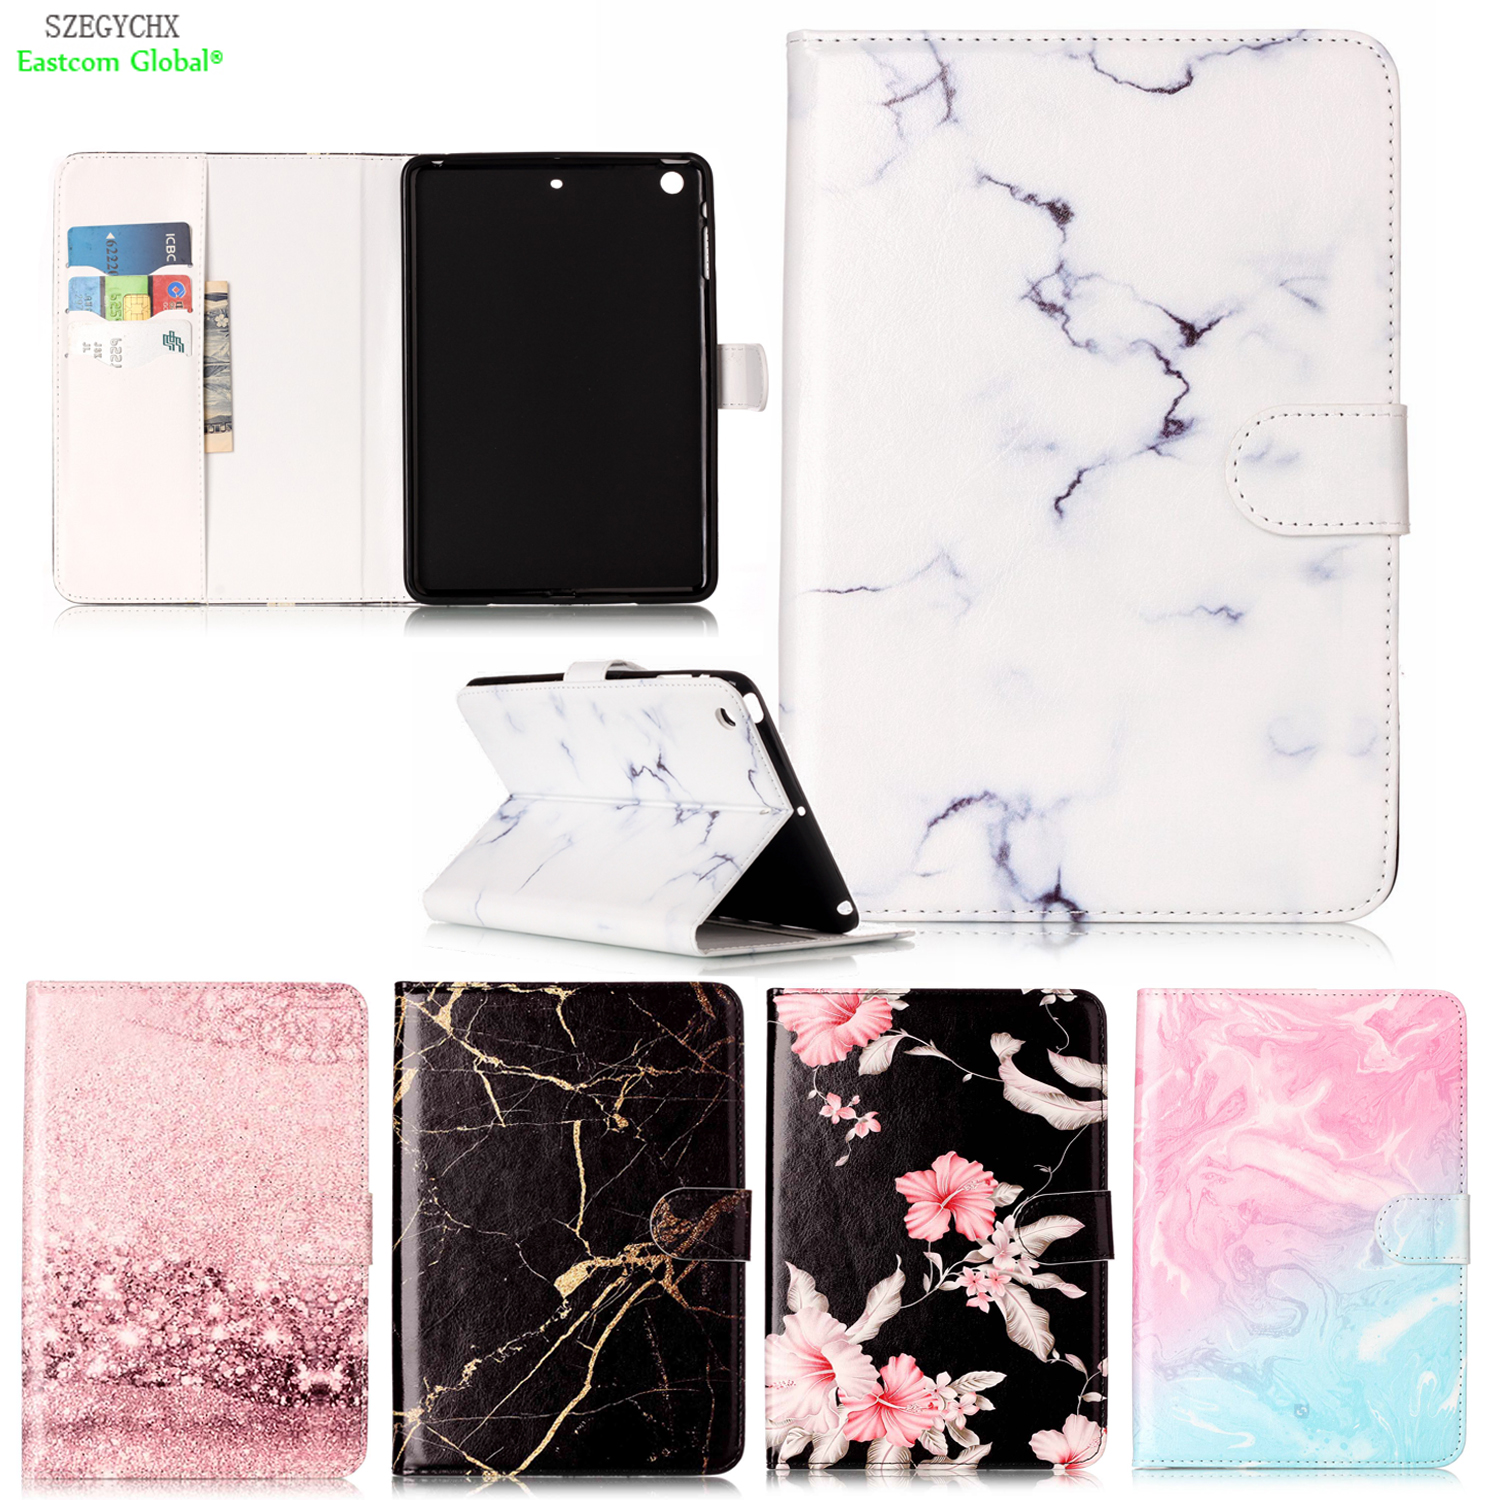 Marble Pattern PU Leather Flip Case For IPad Mini 1 2 3 Case Smart Cover Tablet